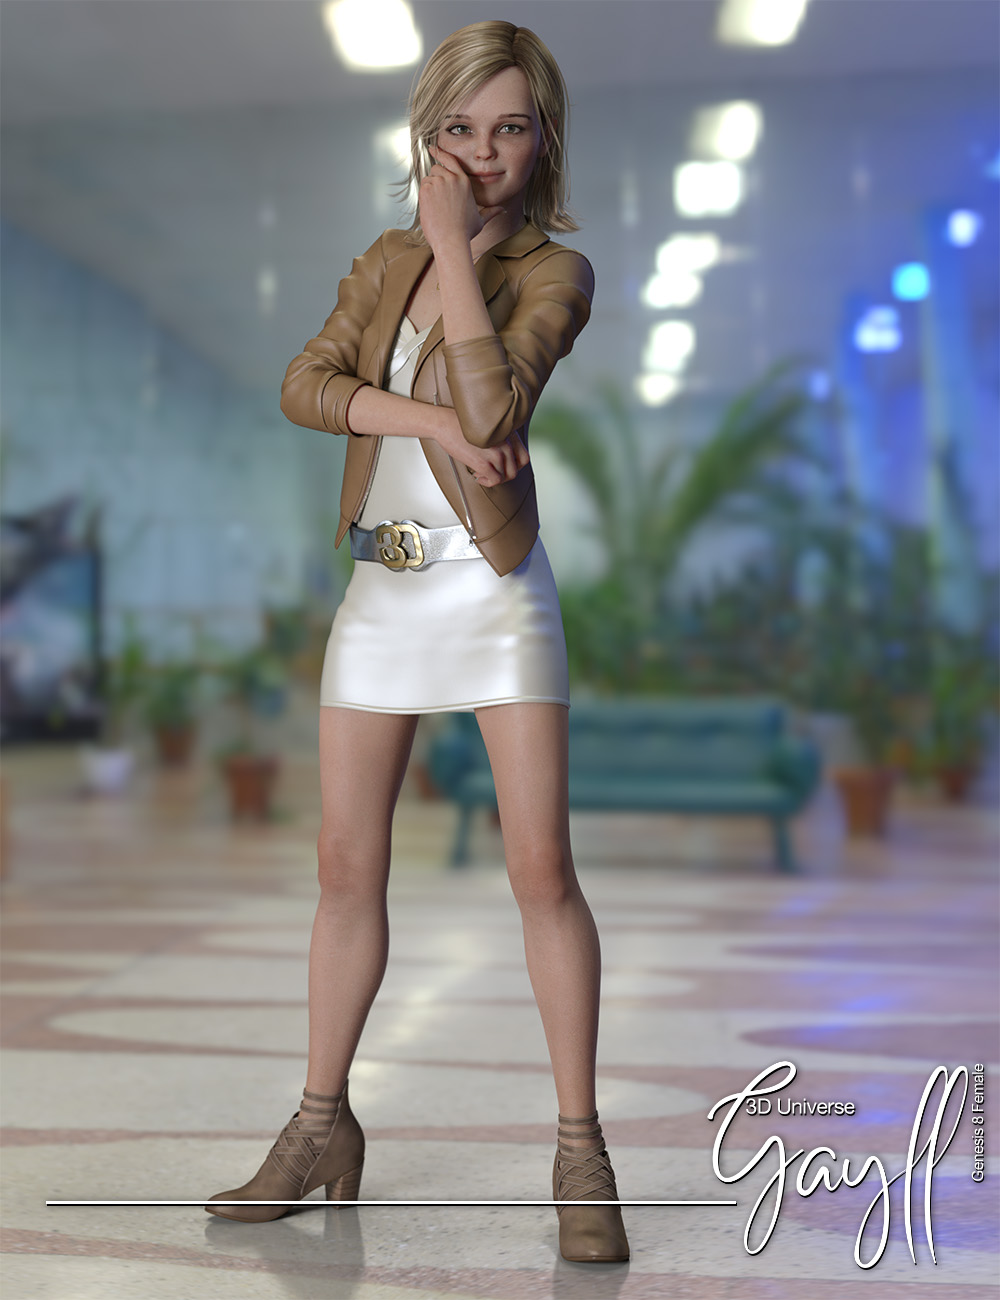 Gayll Clothing and Accessories for Genesis 8 Female(s) by: 3D Universe, 3D Models by Daz 3D